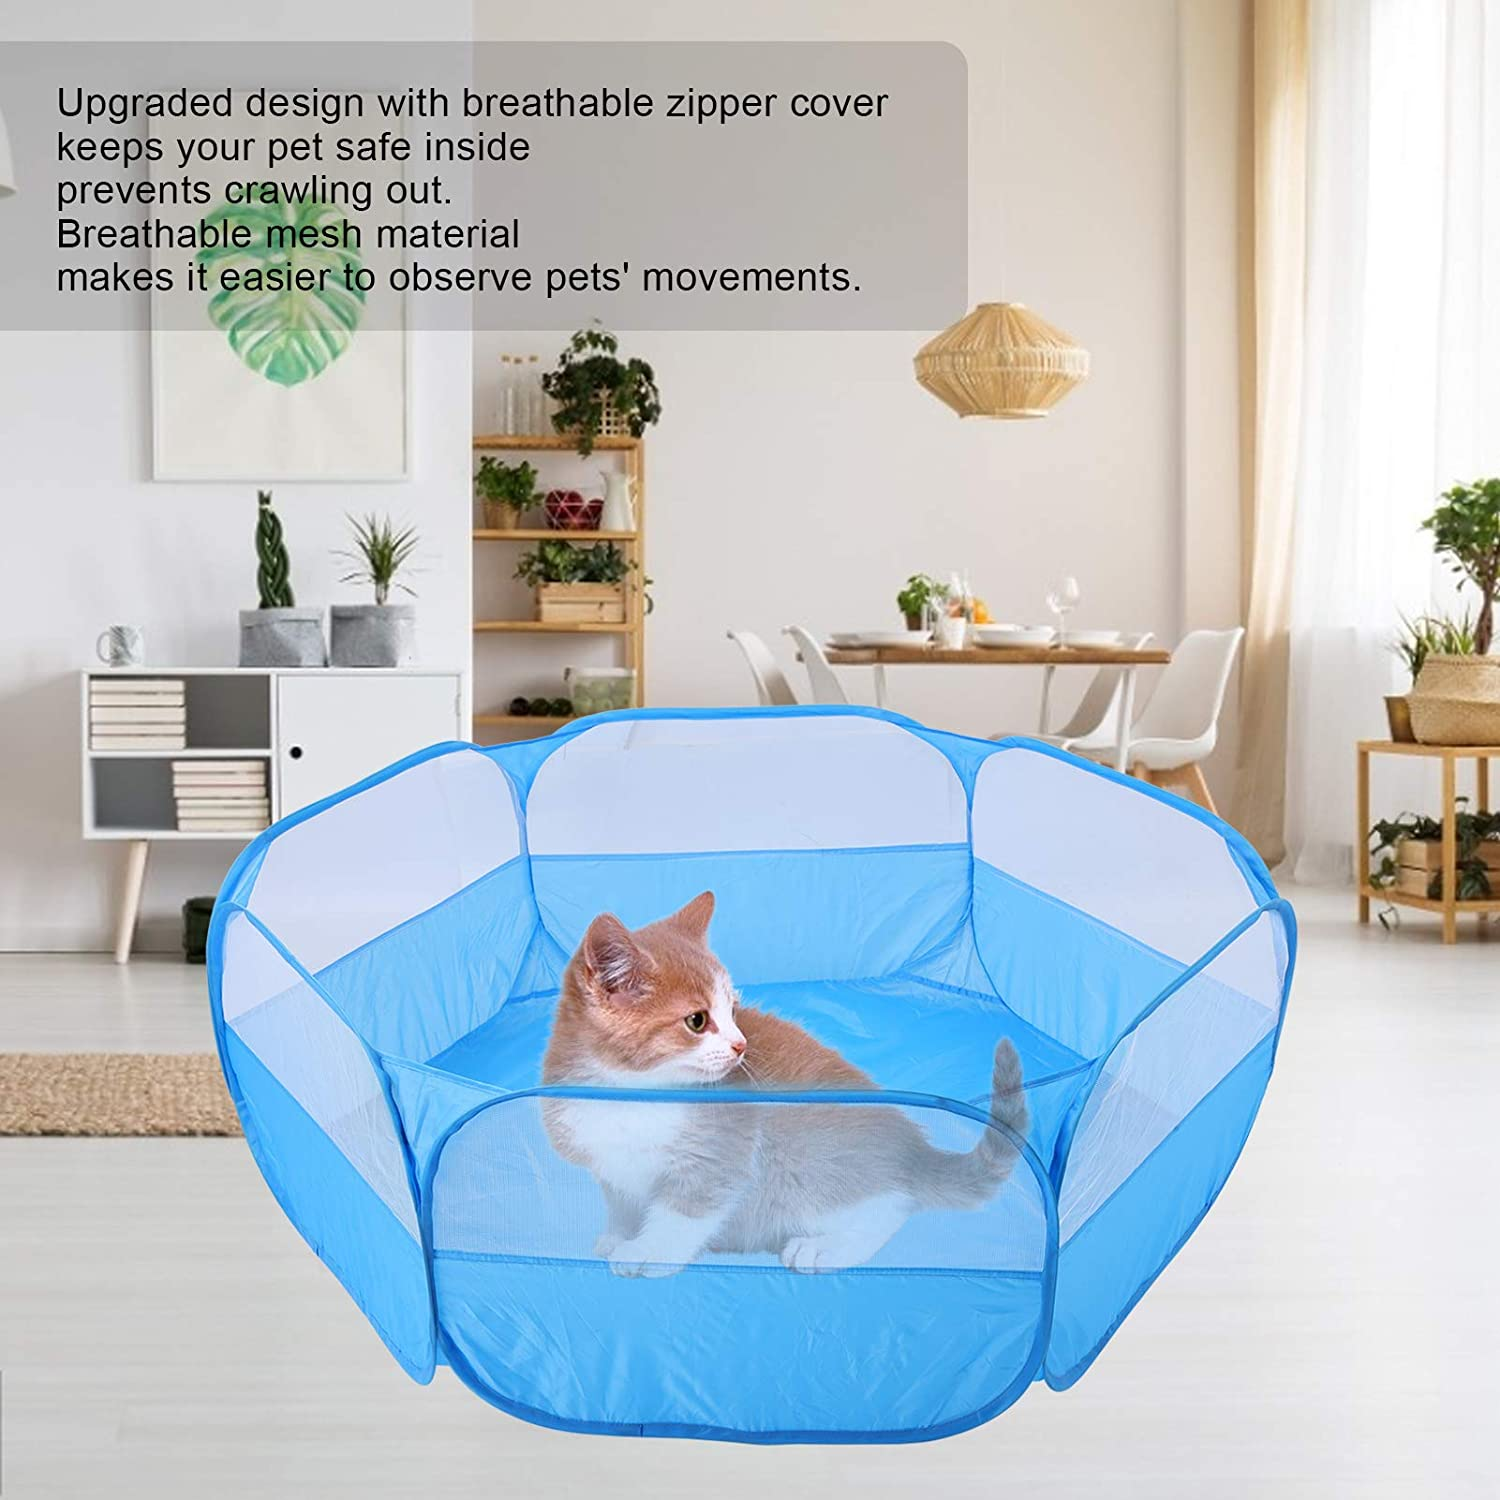 Blue Small Animal Playpen Waterproof Small Pet Cage Tent Foldable Pet Cage with Top Cover Anti Escape for Kitten Puppy Guinea